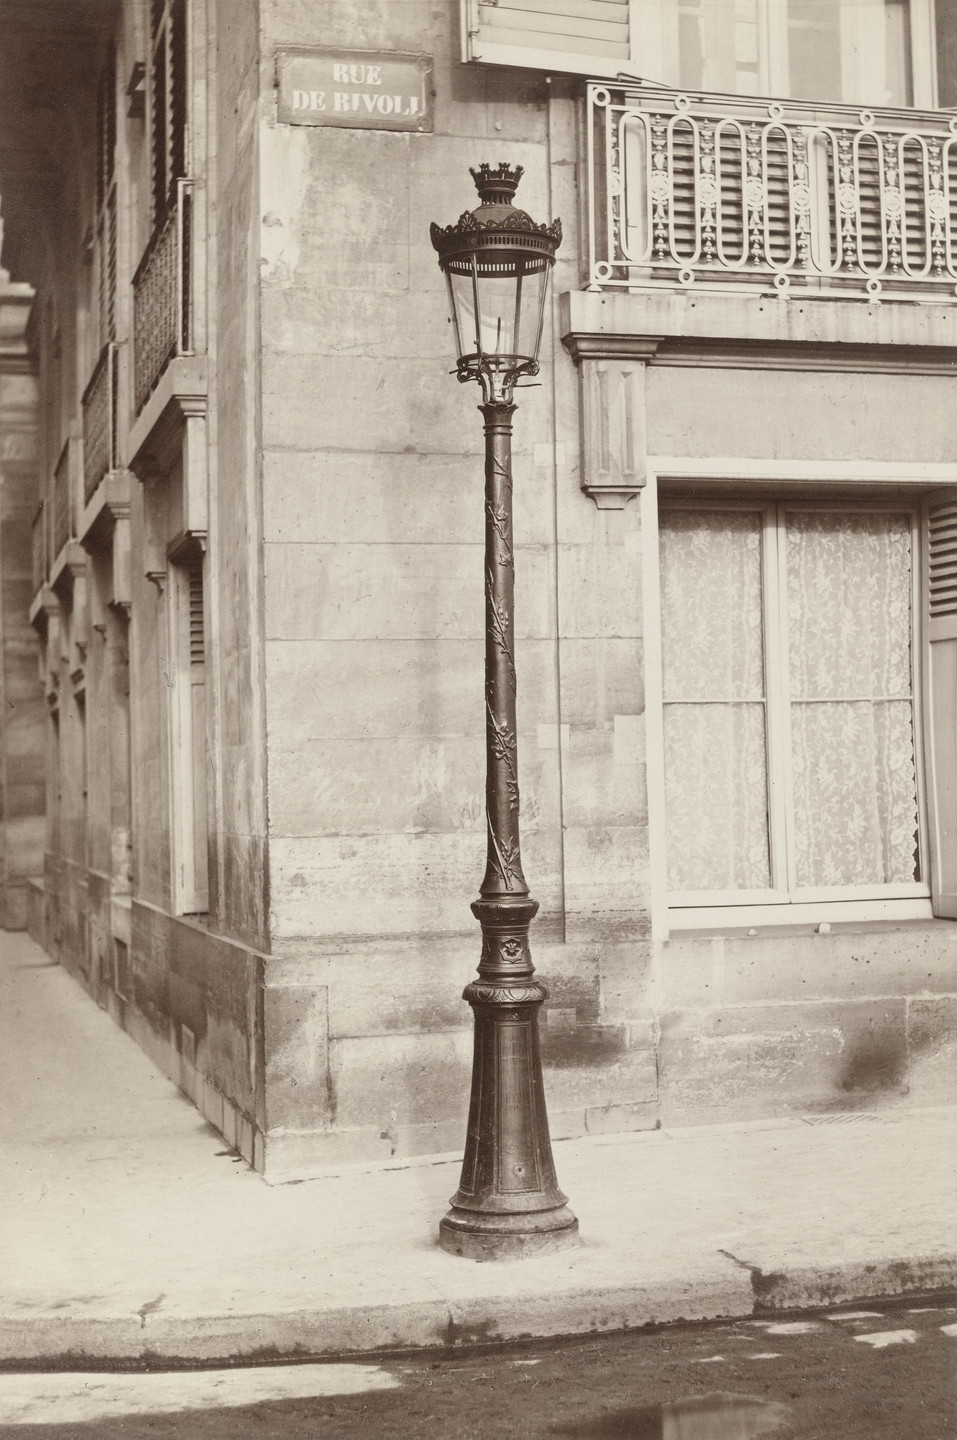 Charles Marville. Streetlamp, Oudry Model. 1870s